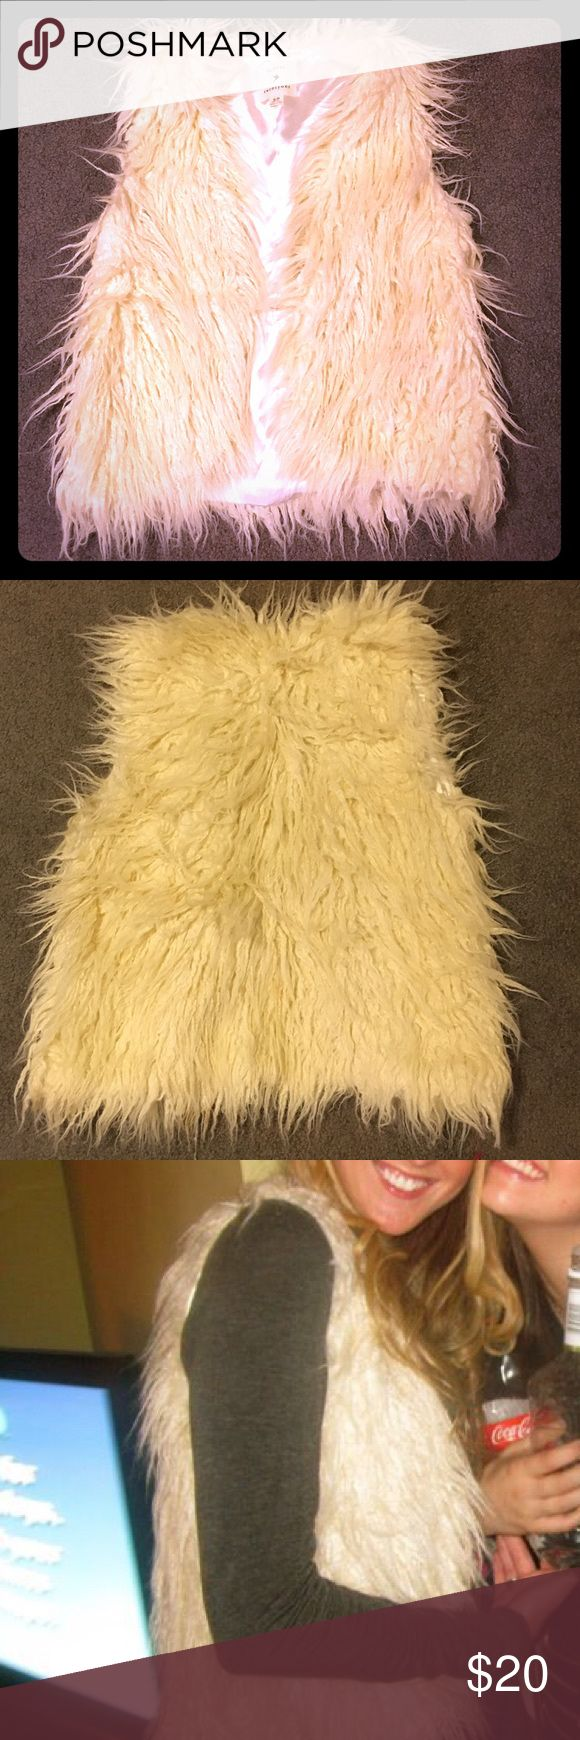 Faux fur vest Off-white, satin lined, 70's style shaggy faux fur vest. Looks adorable over a long sleeve t shirt and jeans Forever 21 Jackets & Coats Vests